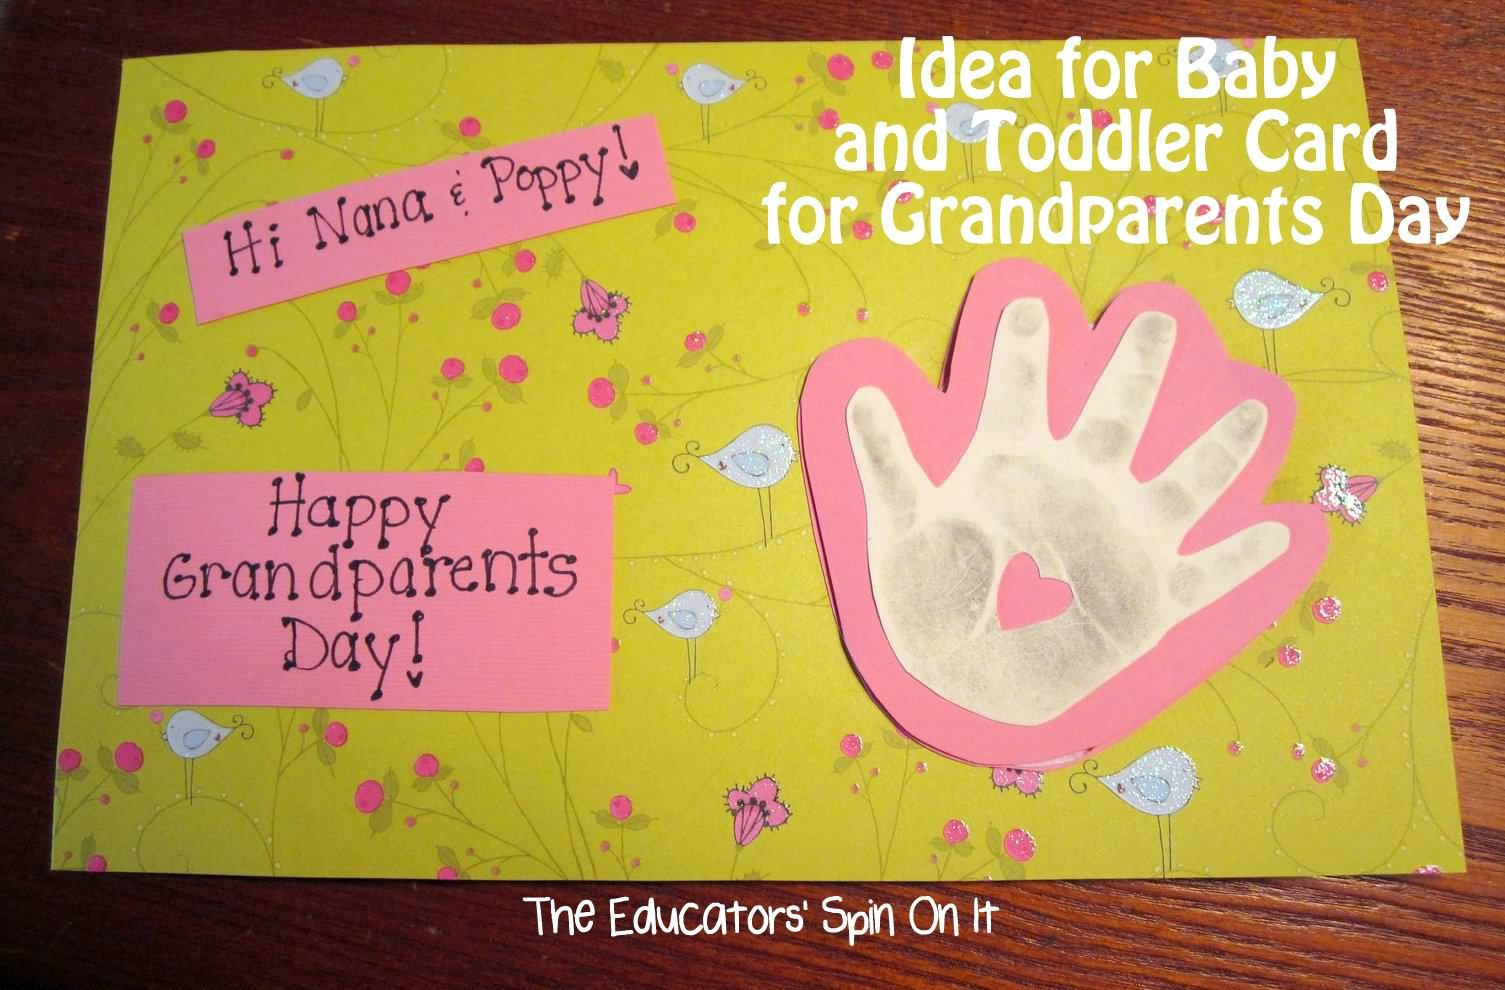 birthday card ideas for grandfather ; handmade-cards-ideas-for-grandparents-4